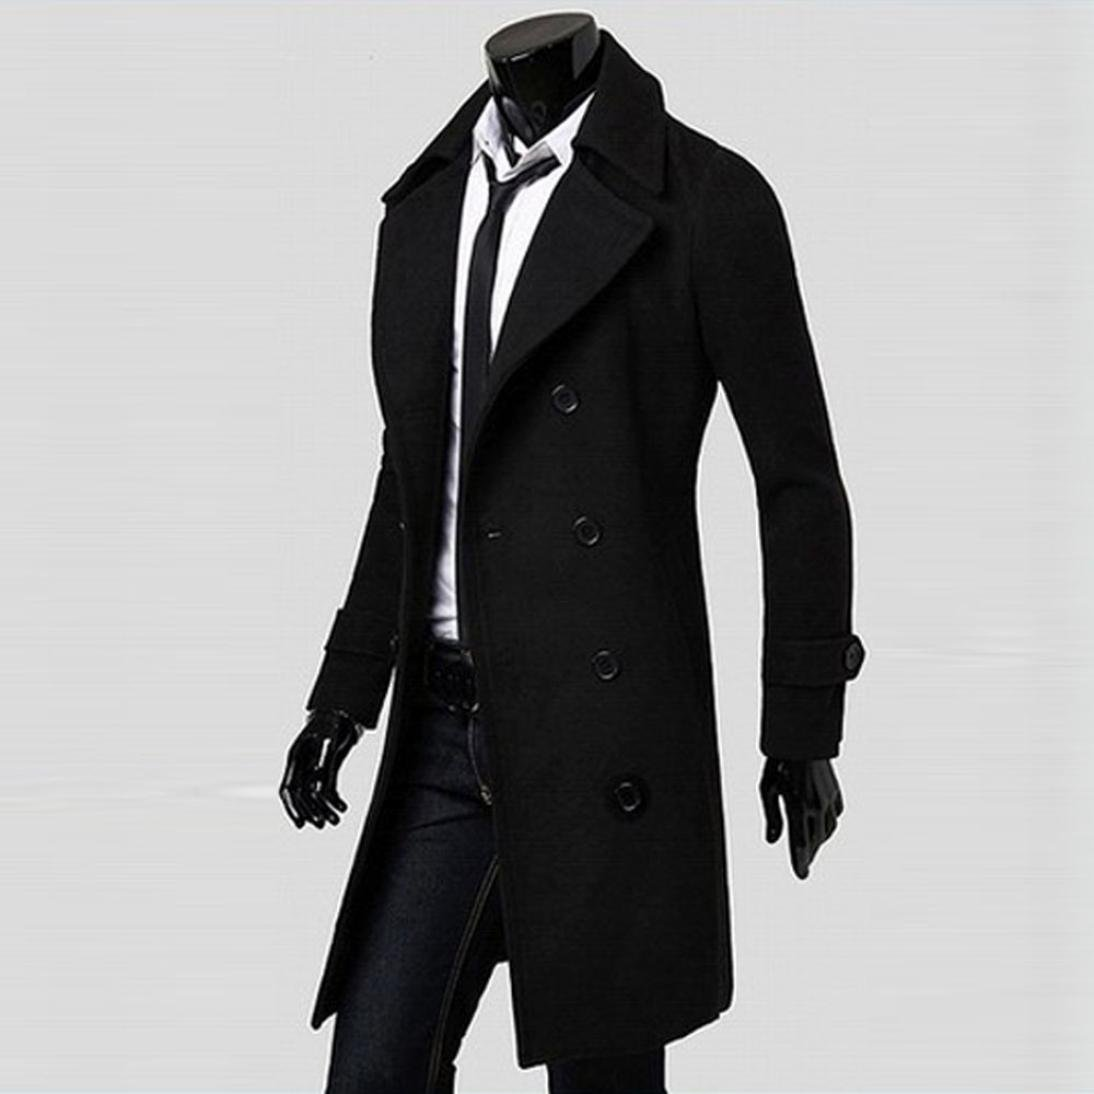 Paymenow Plus Size Mens Parkas Double Breasted Long Trench Coat Slim Jacket Pea Coat at Amazon Mens Clothing store: